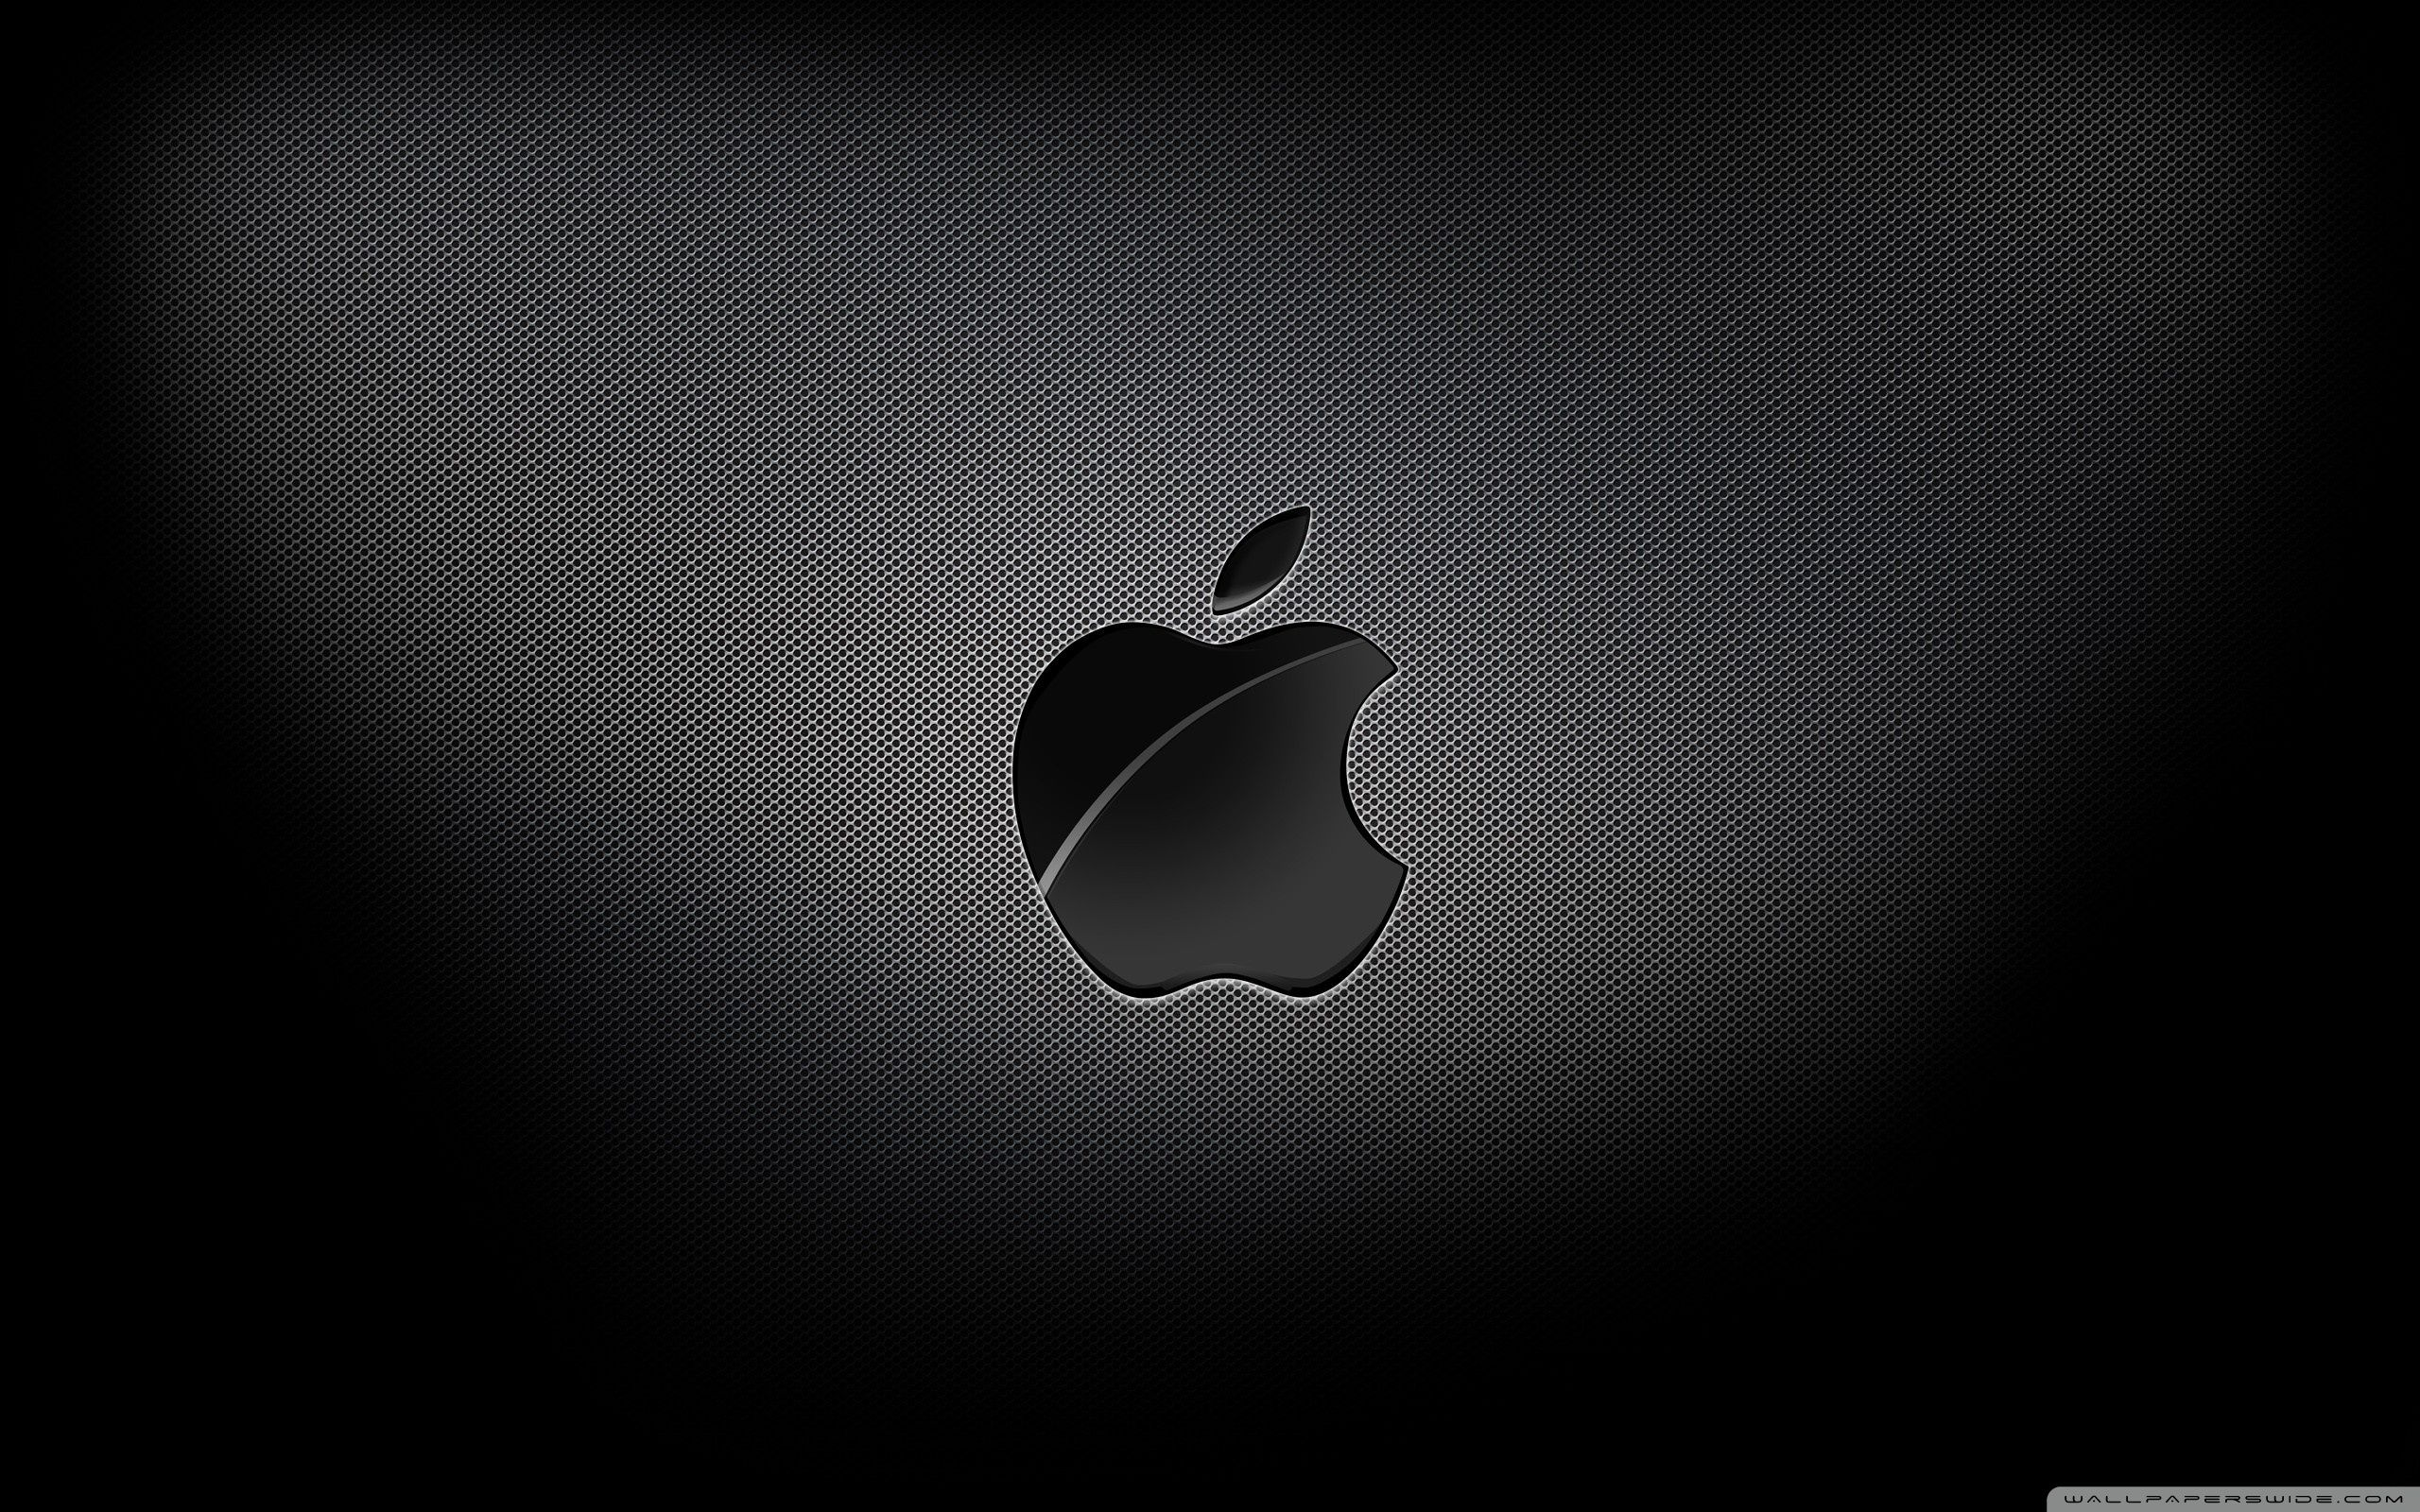 Apple Black Background Pictures Images And Stock Photos Istock Macbook Air Wallpaper Black Apple Wallpaper Macbook Pro Wallpaper